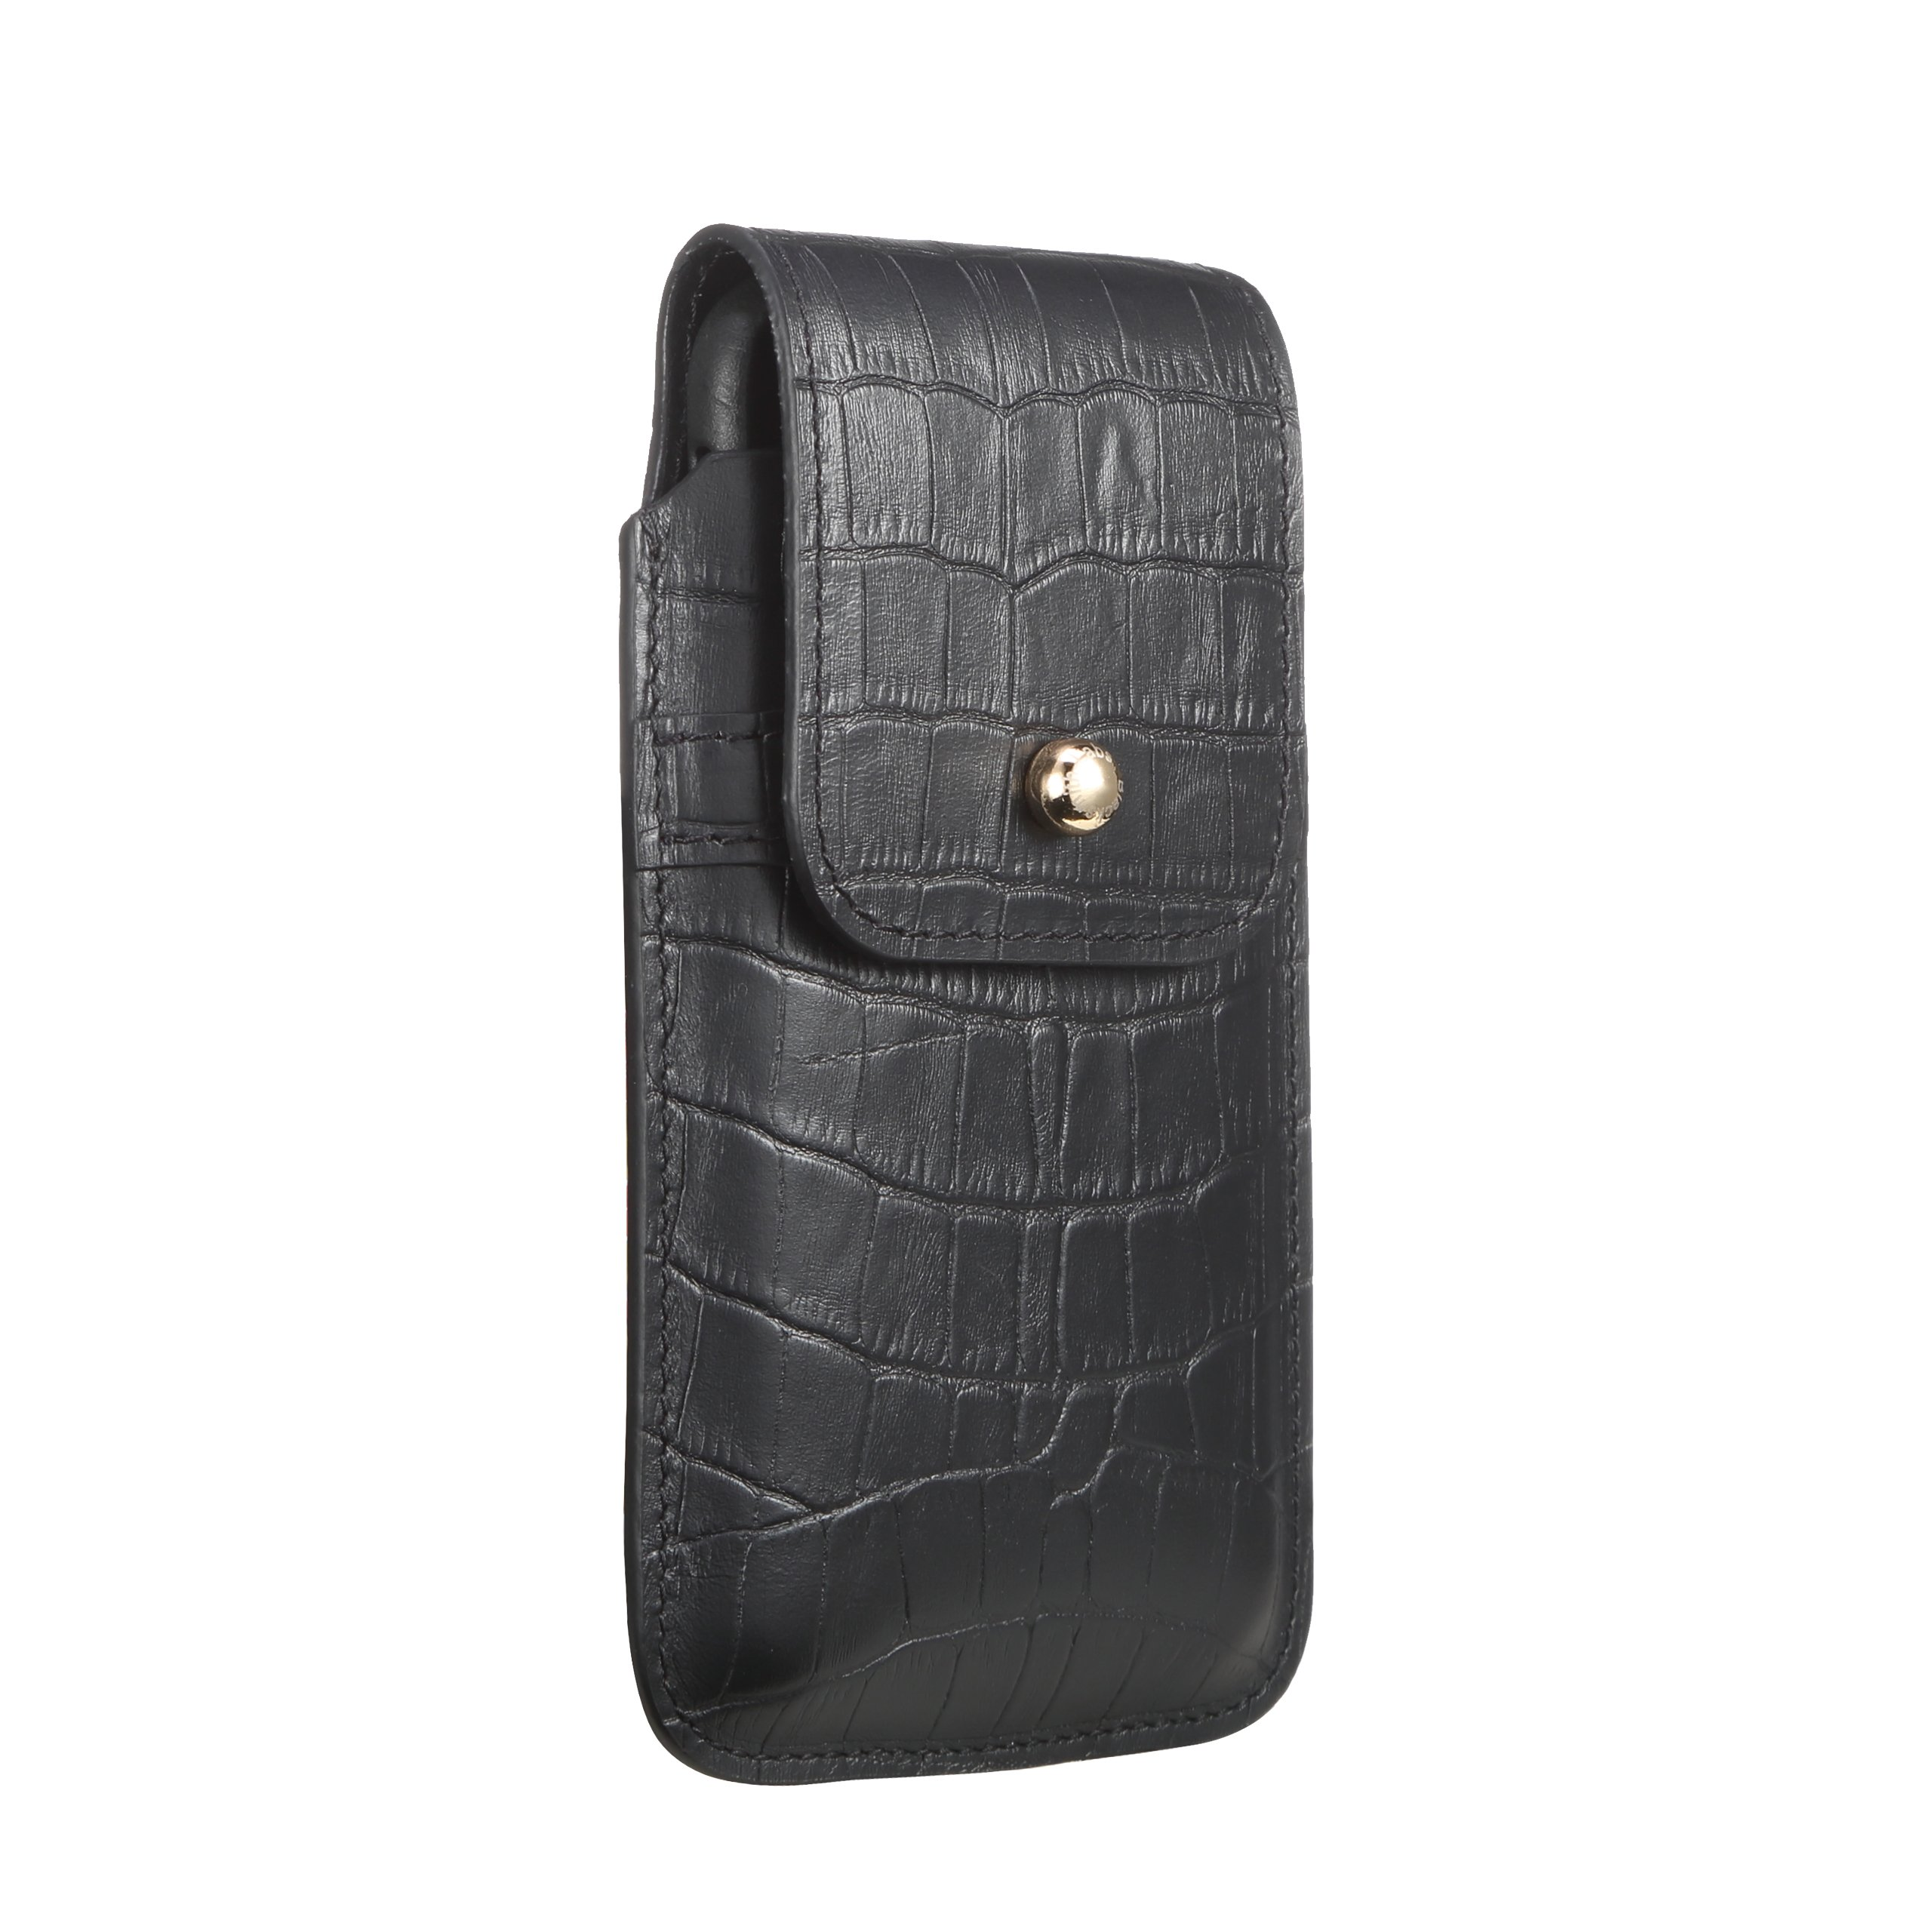 Blacksmith-Labs Barrett 2017 Premium Genuine Leather Swivel Belt Clip Holster for Apple iPhone X for use with no cases or covers - Black Croc Embossed Cowhide/Gold Belt Clip